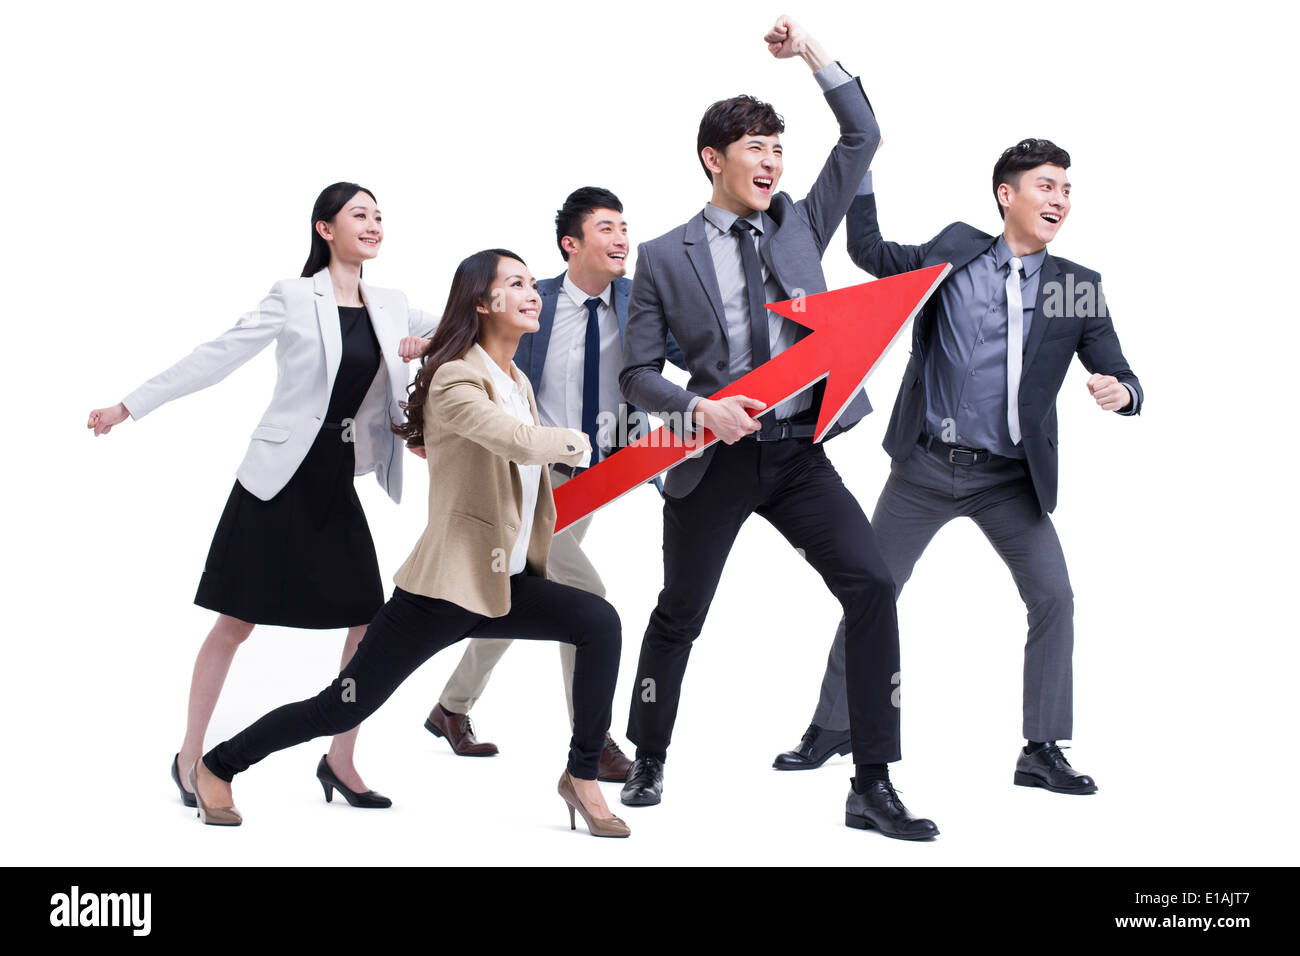 Fashionable businessperson punching the air with red arrow sign - Stock Image